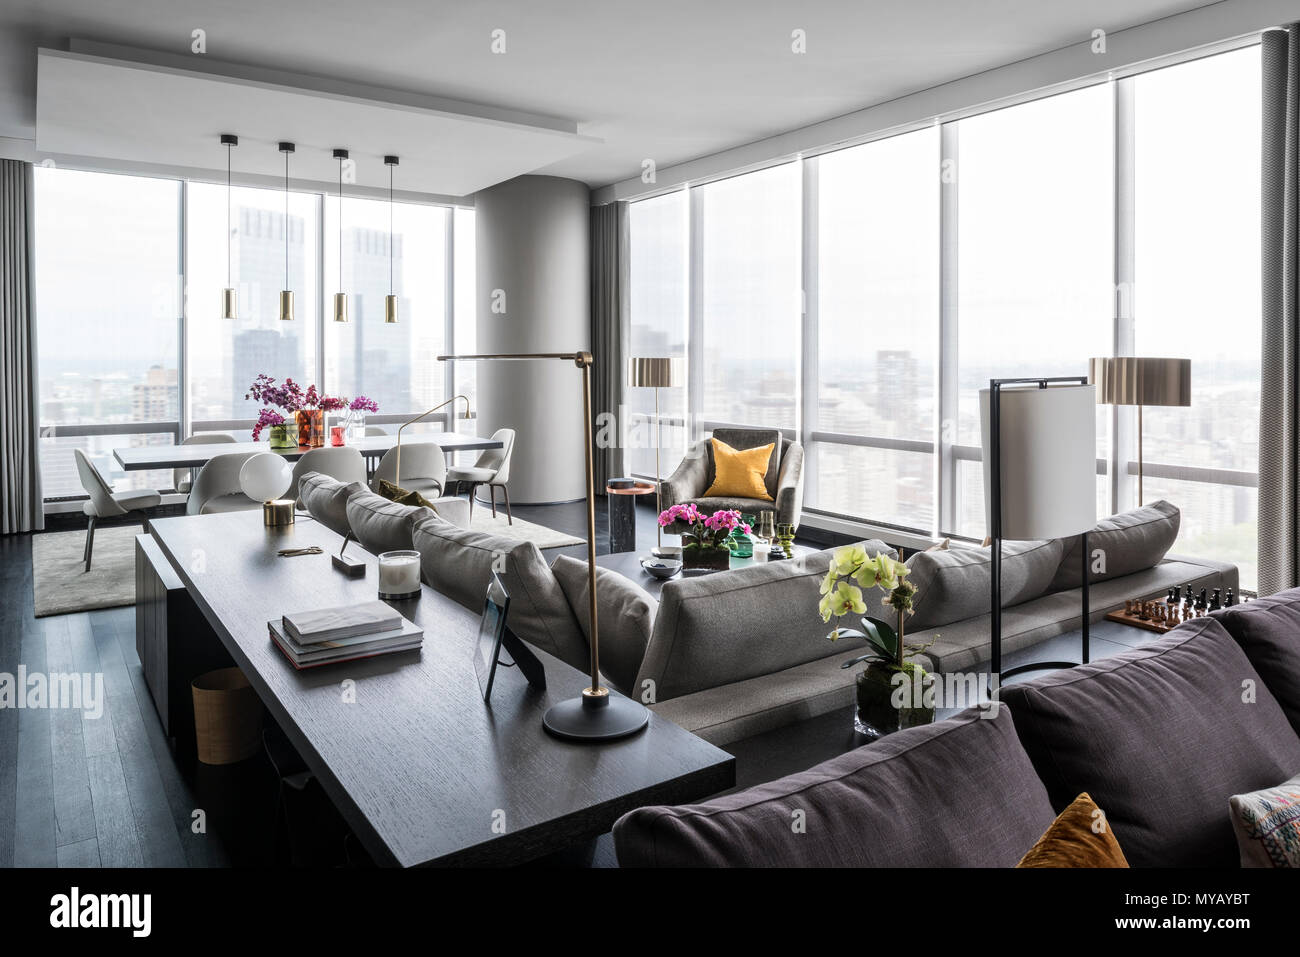 Wohnzimmer In Modernes Apartment In New York City Usa Stockfoto